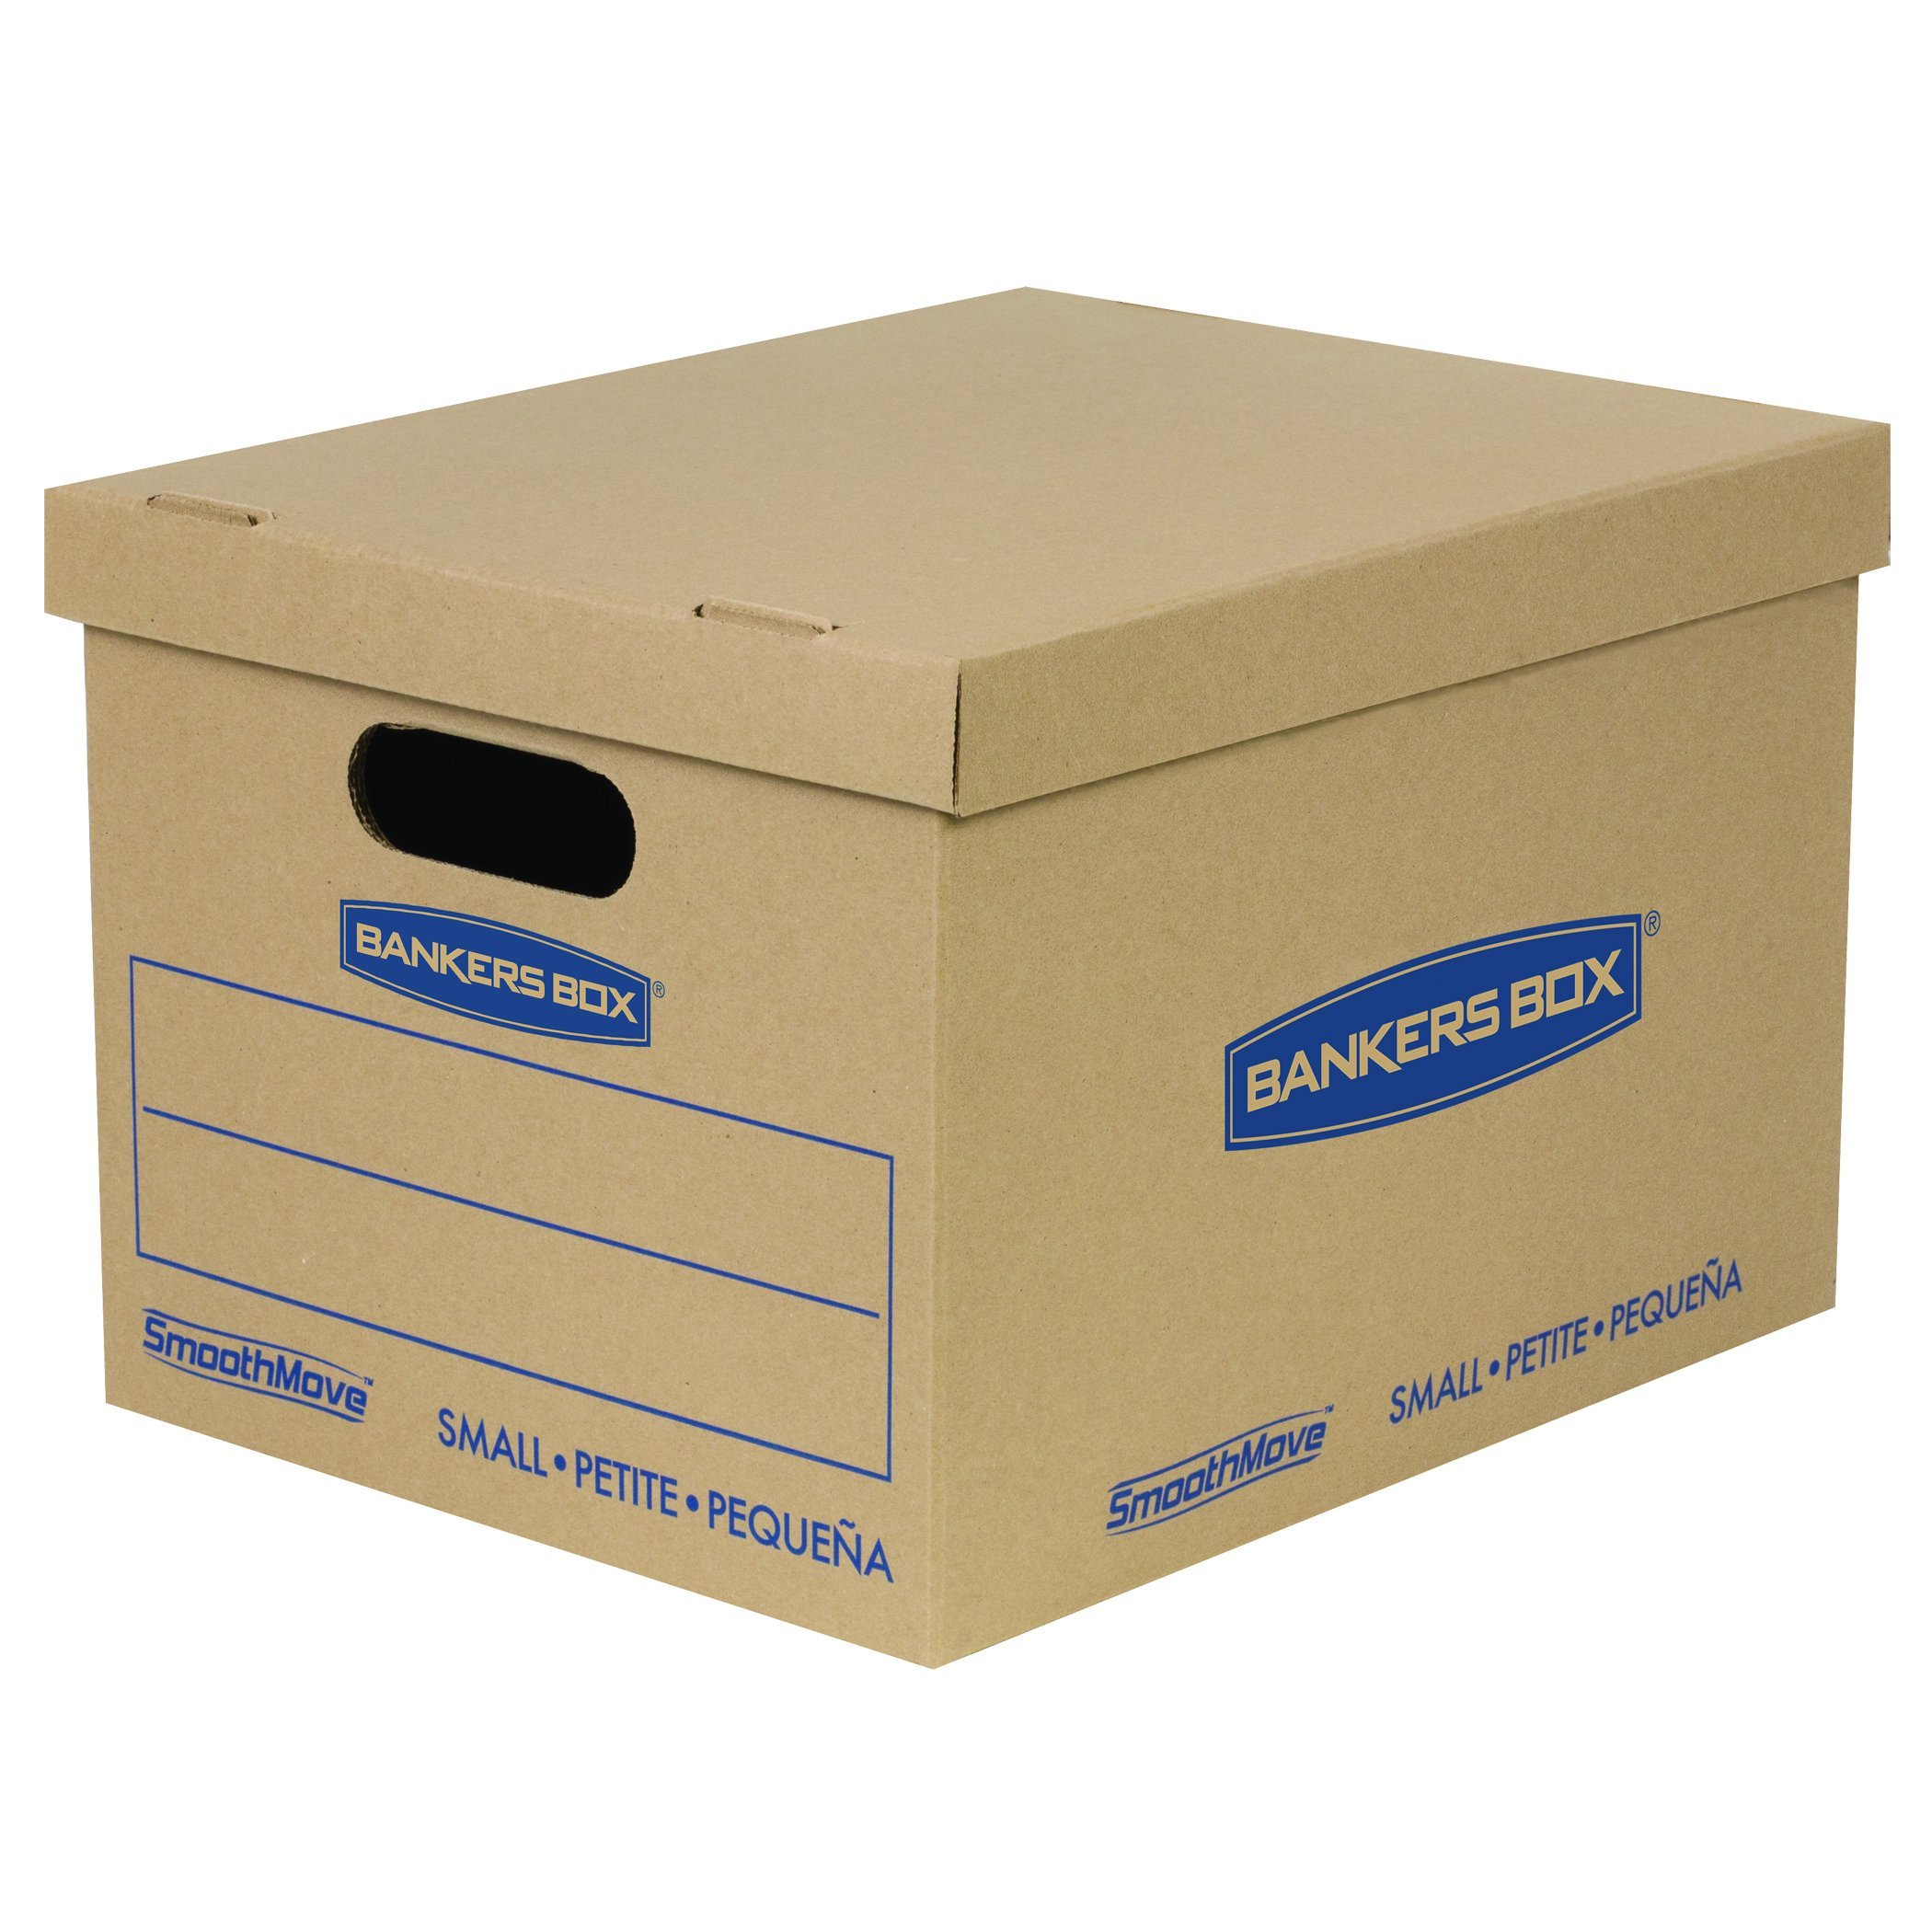 Bankers Box SmoothMove Classic Moving Boxes, Tape-Free Assembly, Easy Carry Handles, Small, 15 x 12 x 10 Inches, 20 Pack (7714210) by Bankers Box